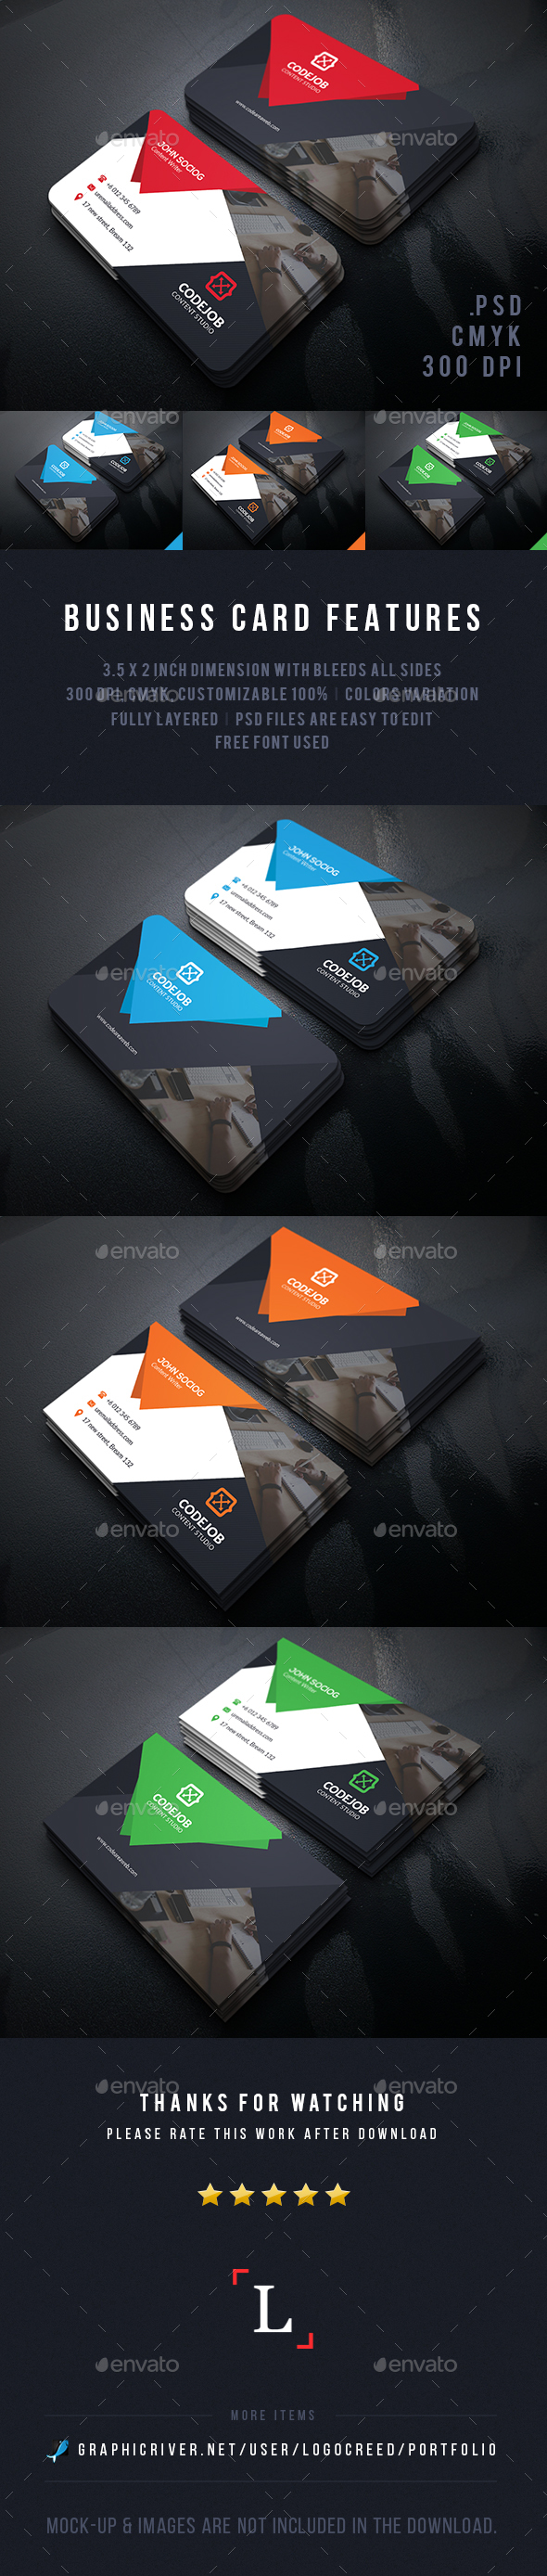 Creative Corporate Business Cards - Business Cards Print Templates